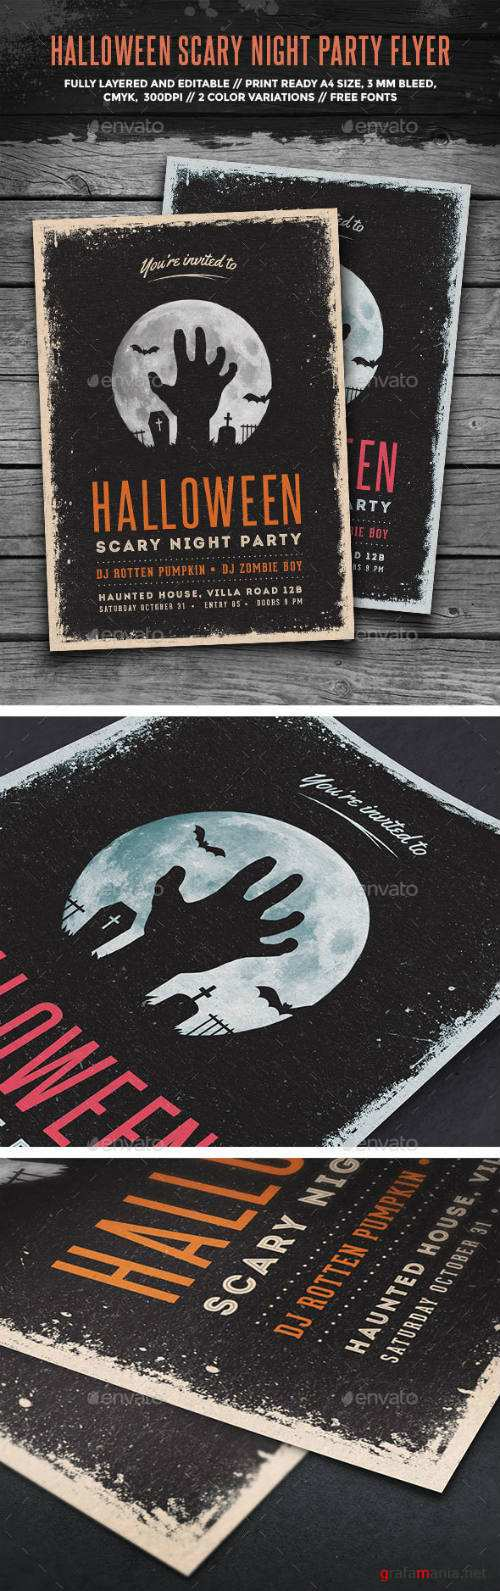 Halloween Scary Night Party Flyer 13066852